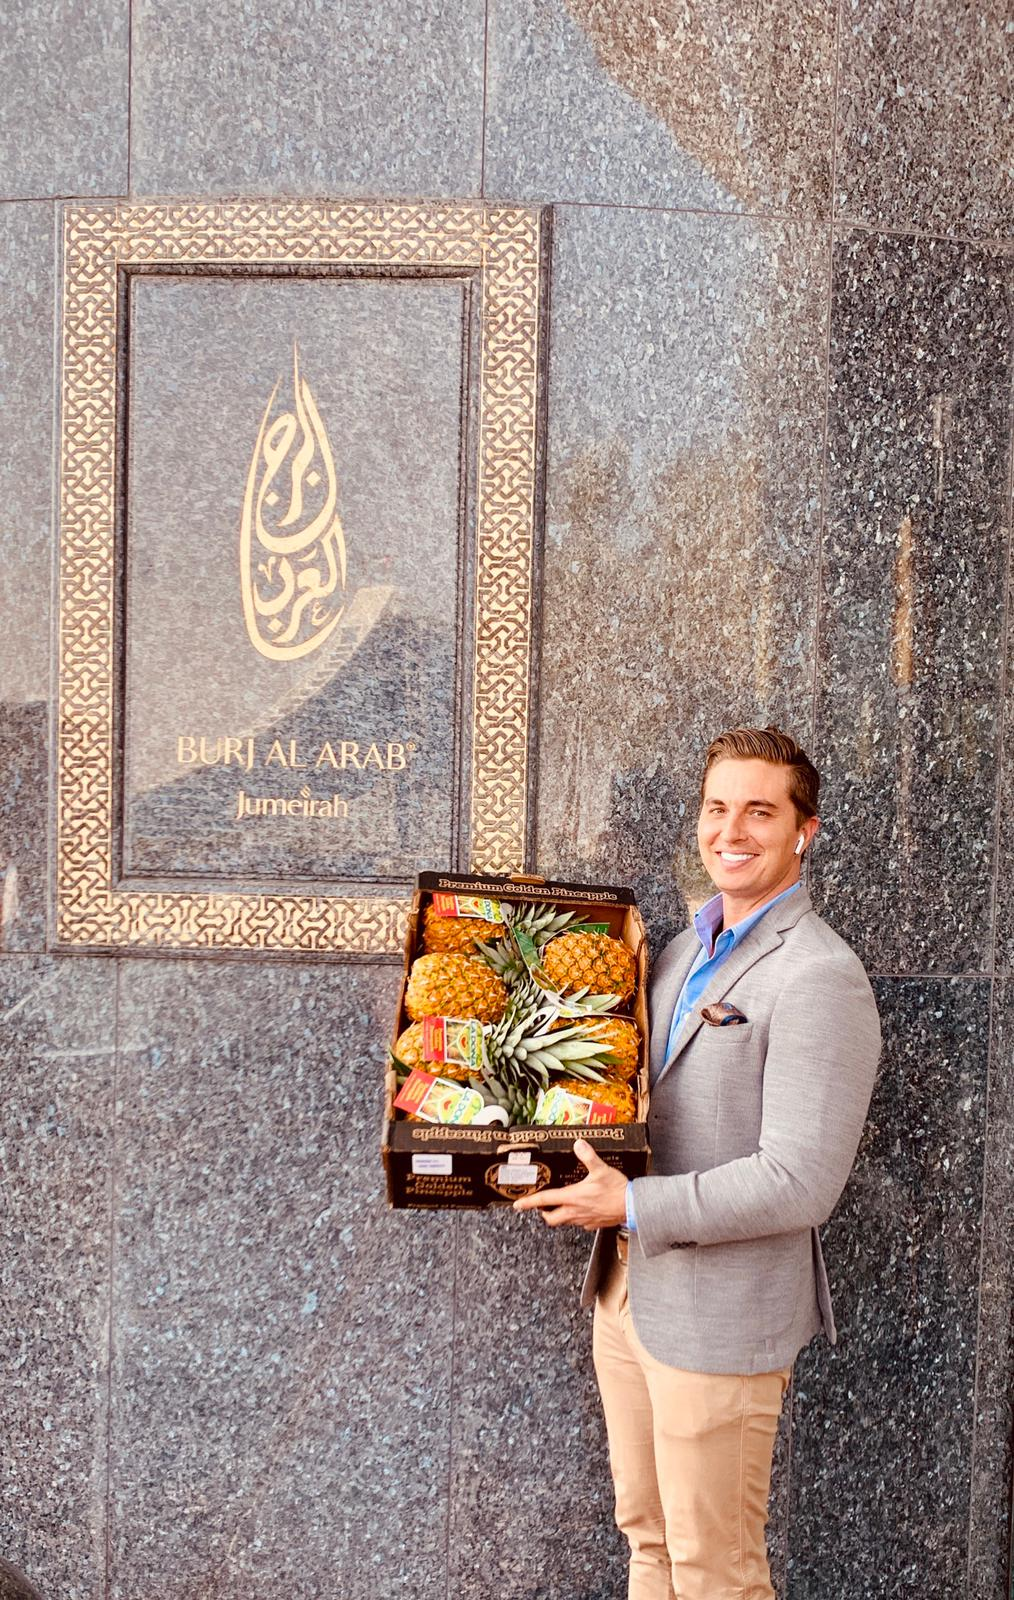 La Dona Fruit Ships First-Ever Air-Freighted Pineapple from Panama to Dubai